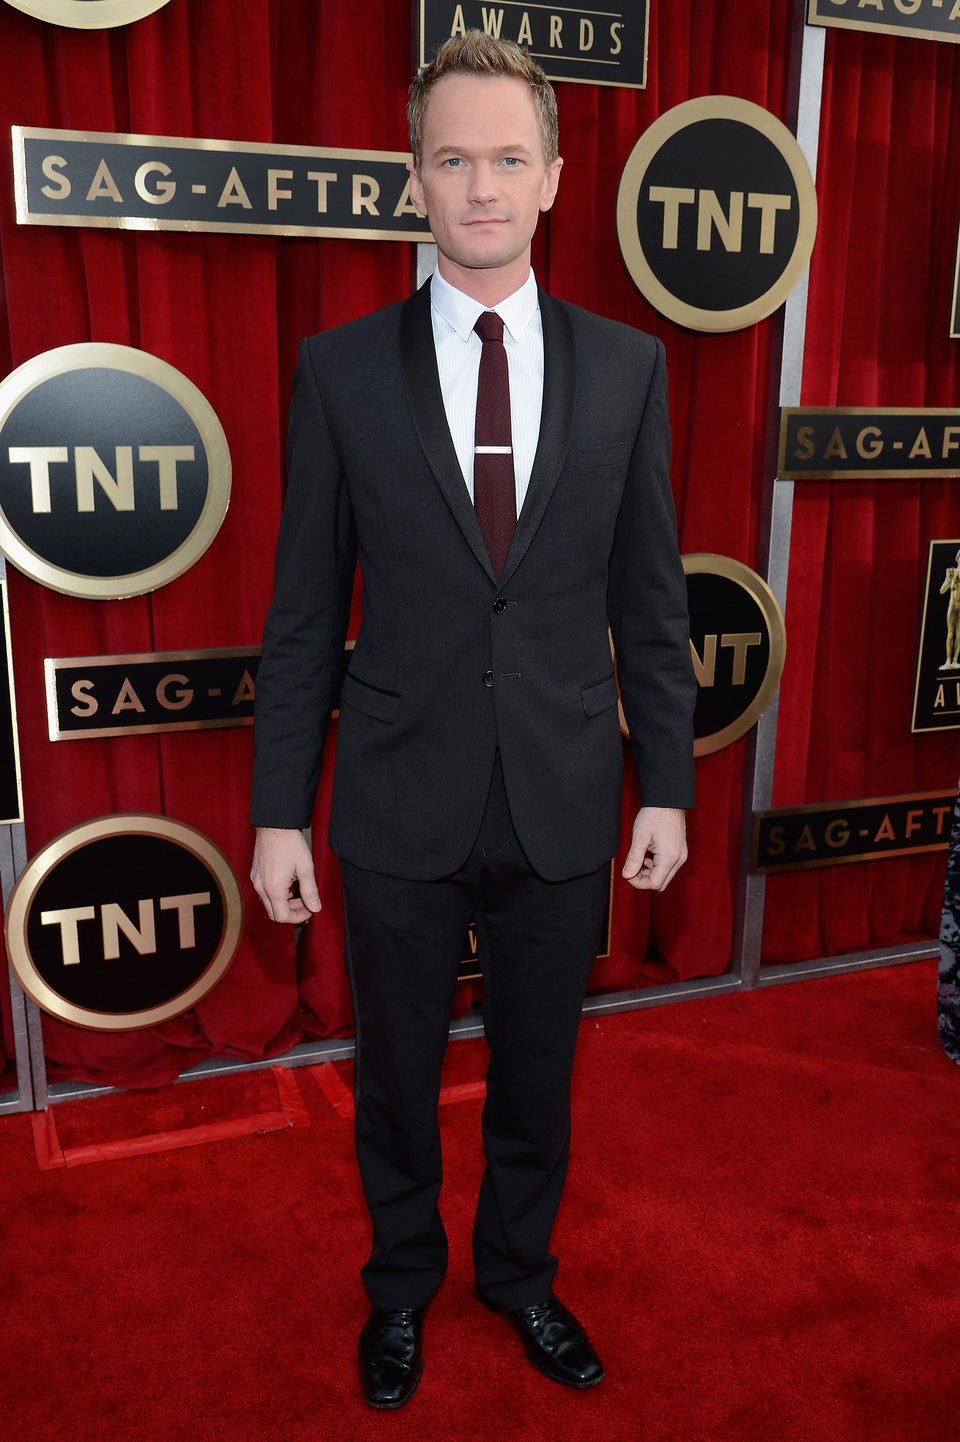 Neil Patrick Harris en la alfombra roja de los Screen Actors Guild Awards 2013